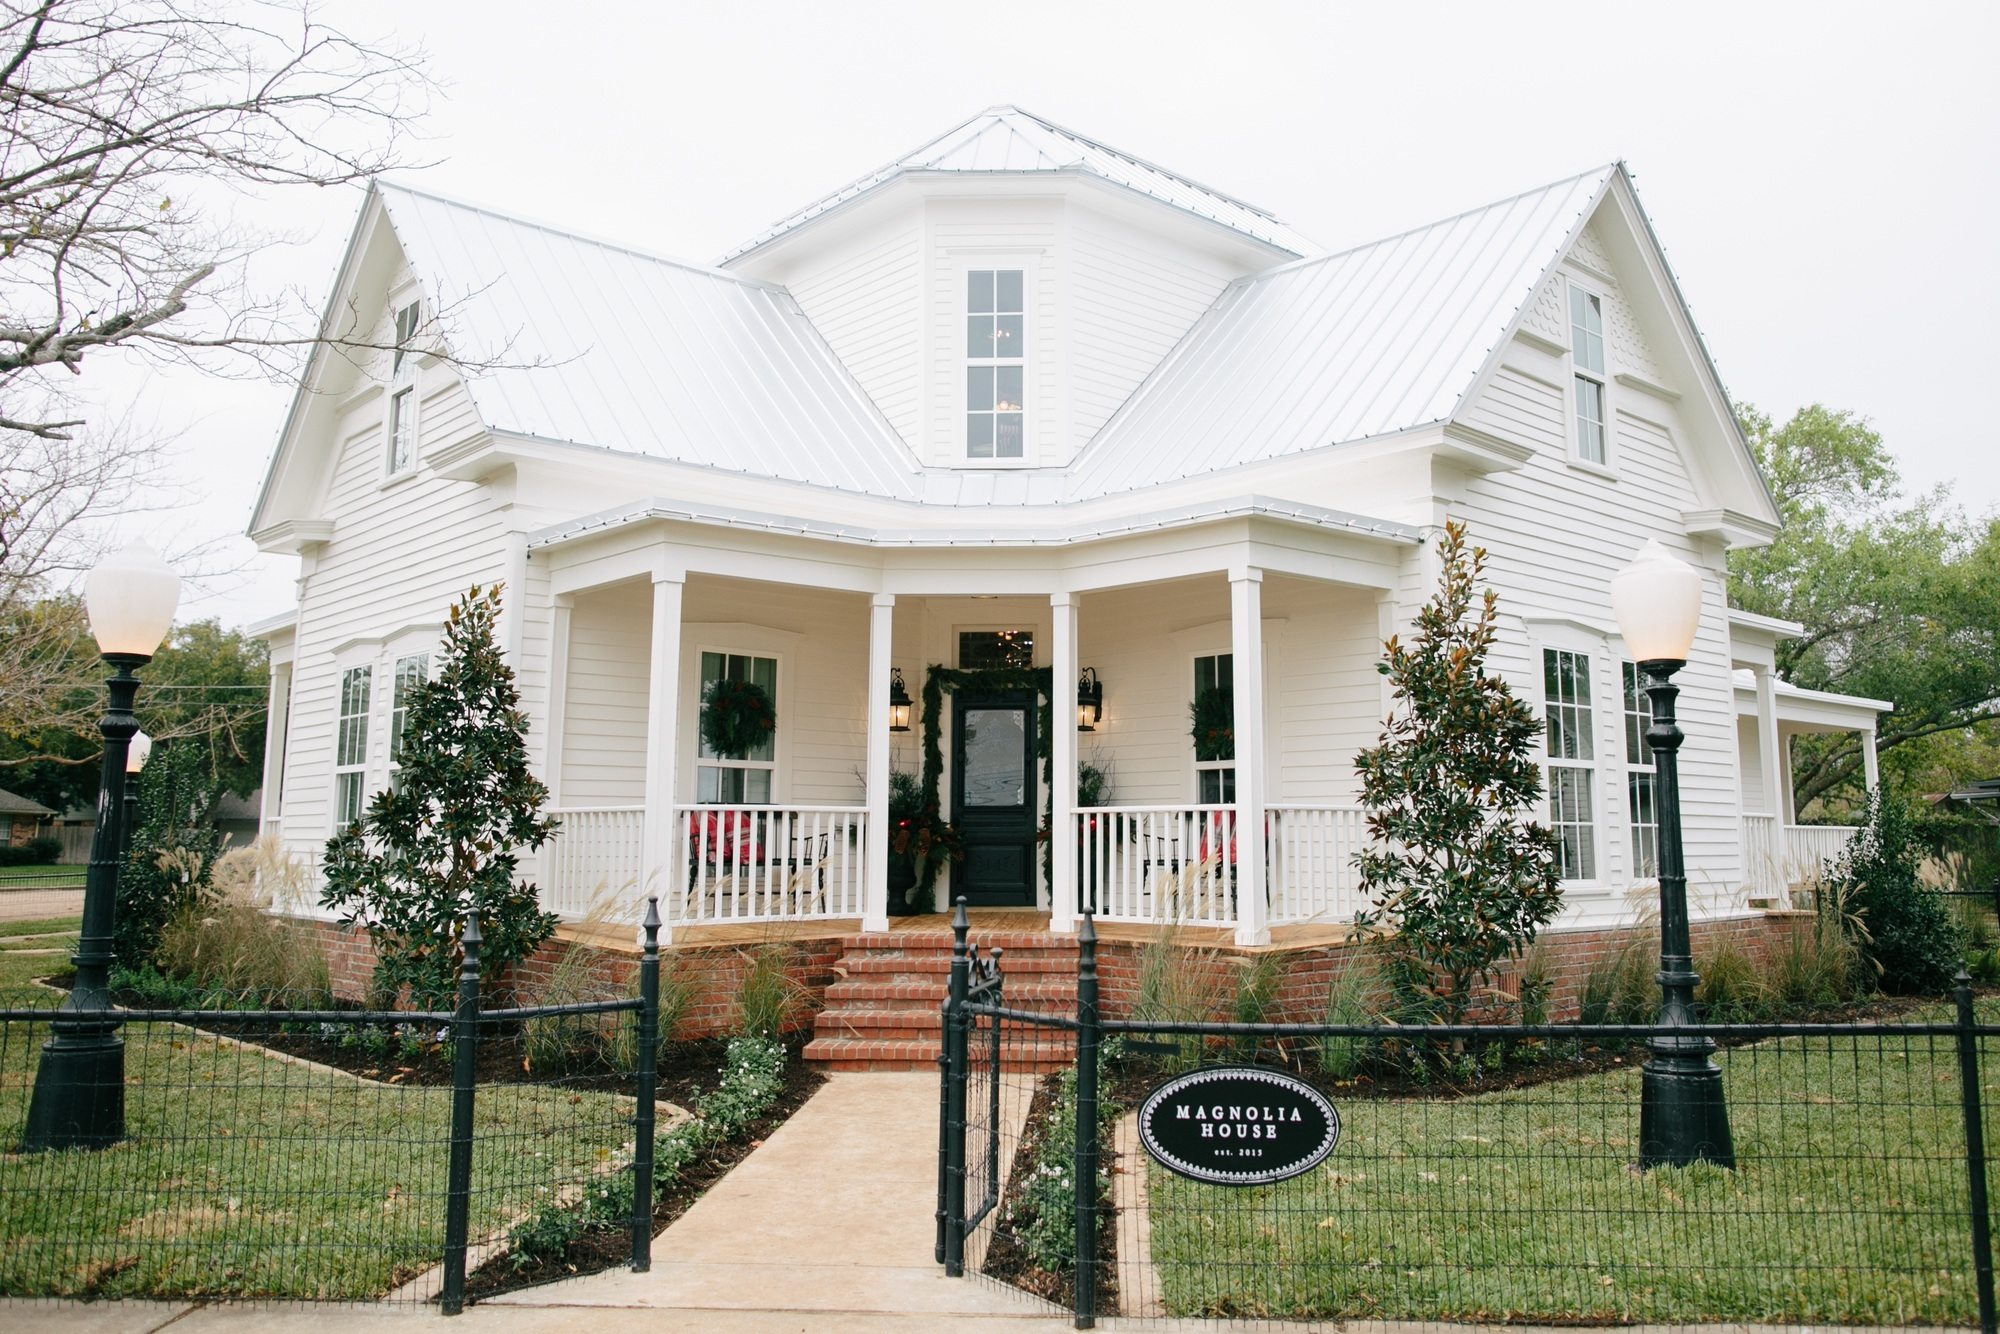 Magnolia Fixer Upper : magnolia house the new b b by fixer upper ~ Orissabook.com Haus und Dekorationen